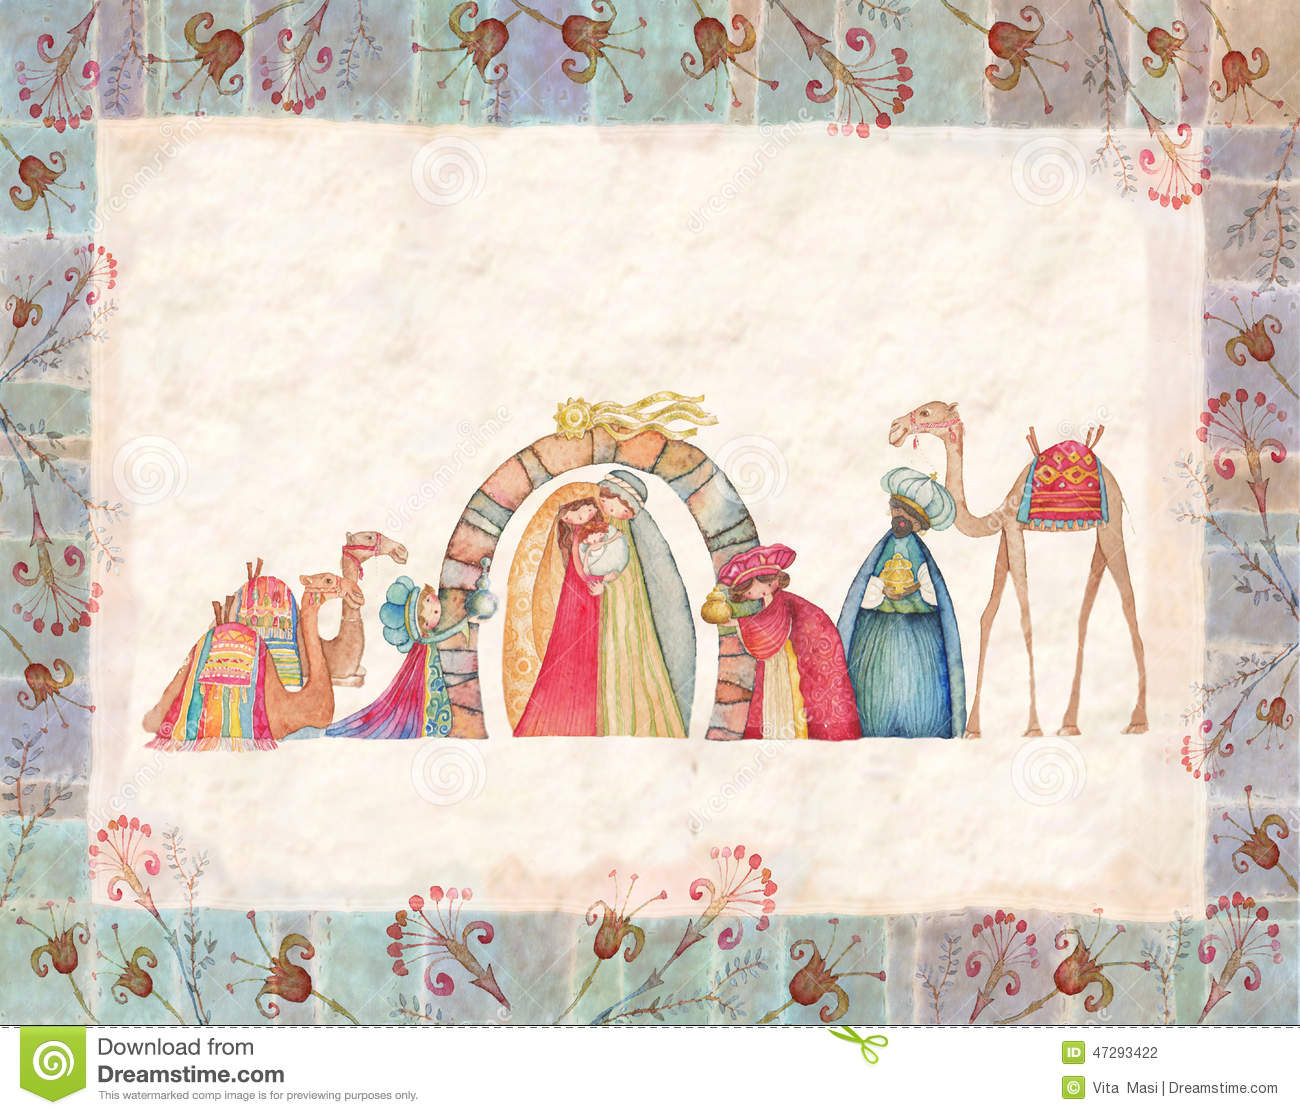 Illustration Of Christian Christmas Nativity Scene With